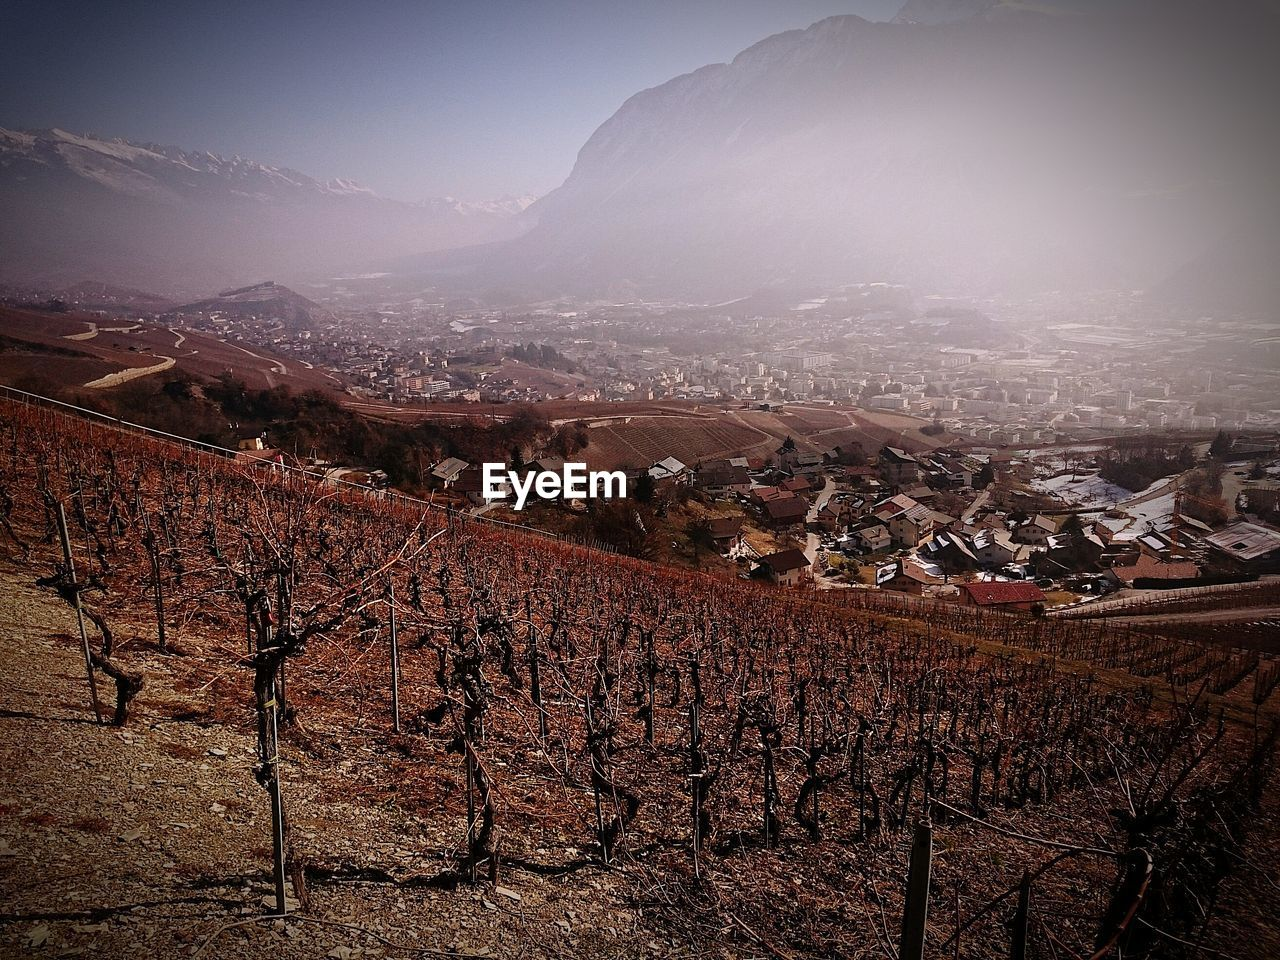 High angle view of dry vineyard against mountains in foggy weather